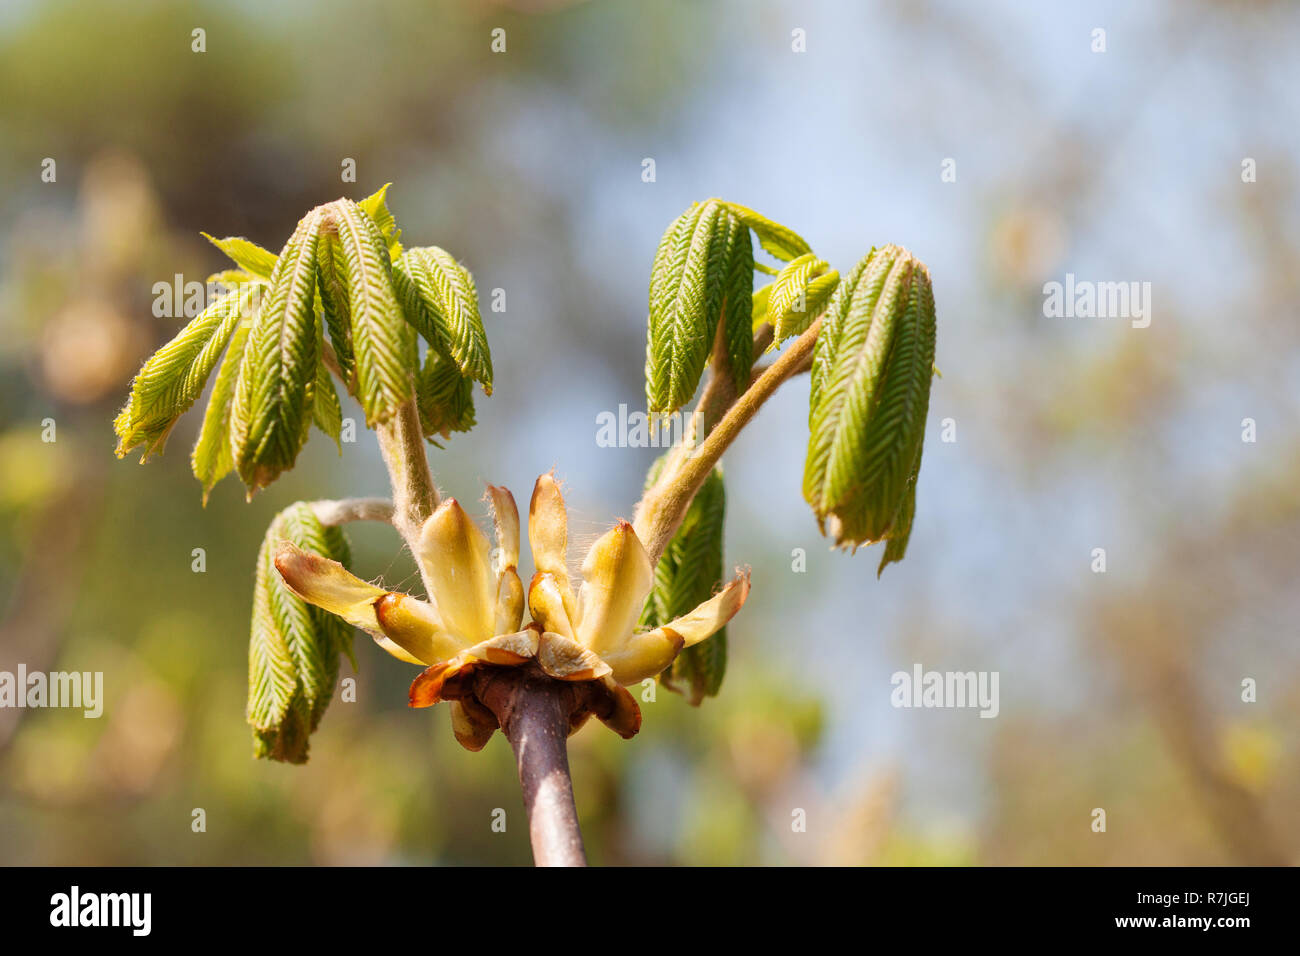 Horse chestnut bud bursting into leaves. Castania tree branch macro view. Beatiful floral spring time background. Shallow depth of field, soft focus background. - Stock Image